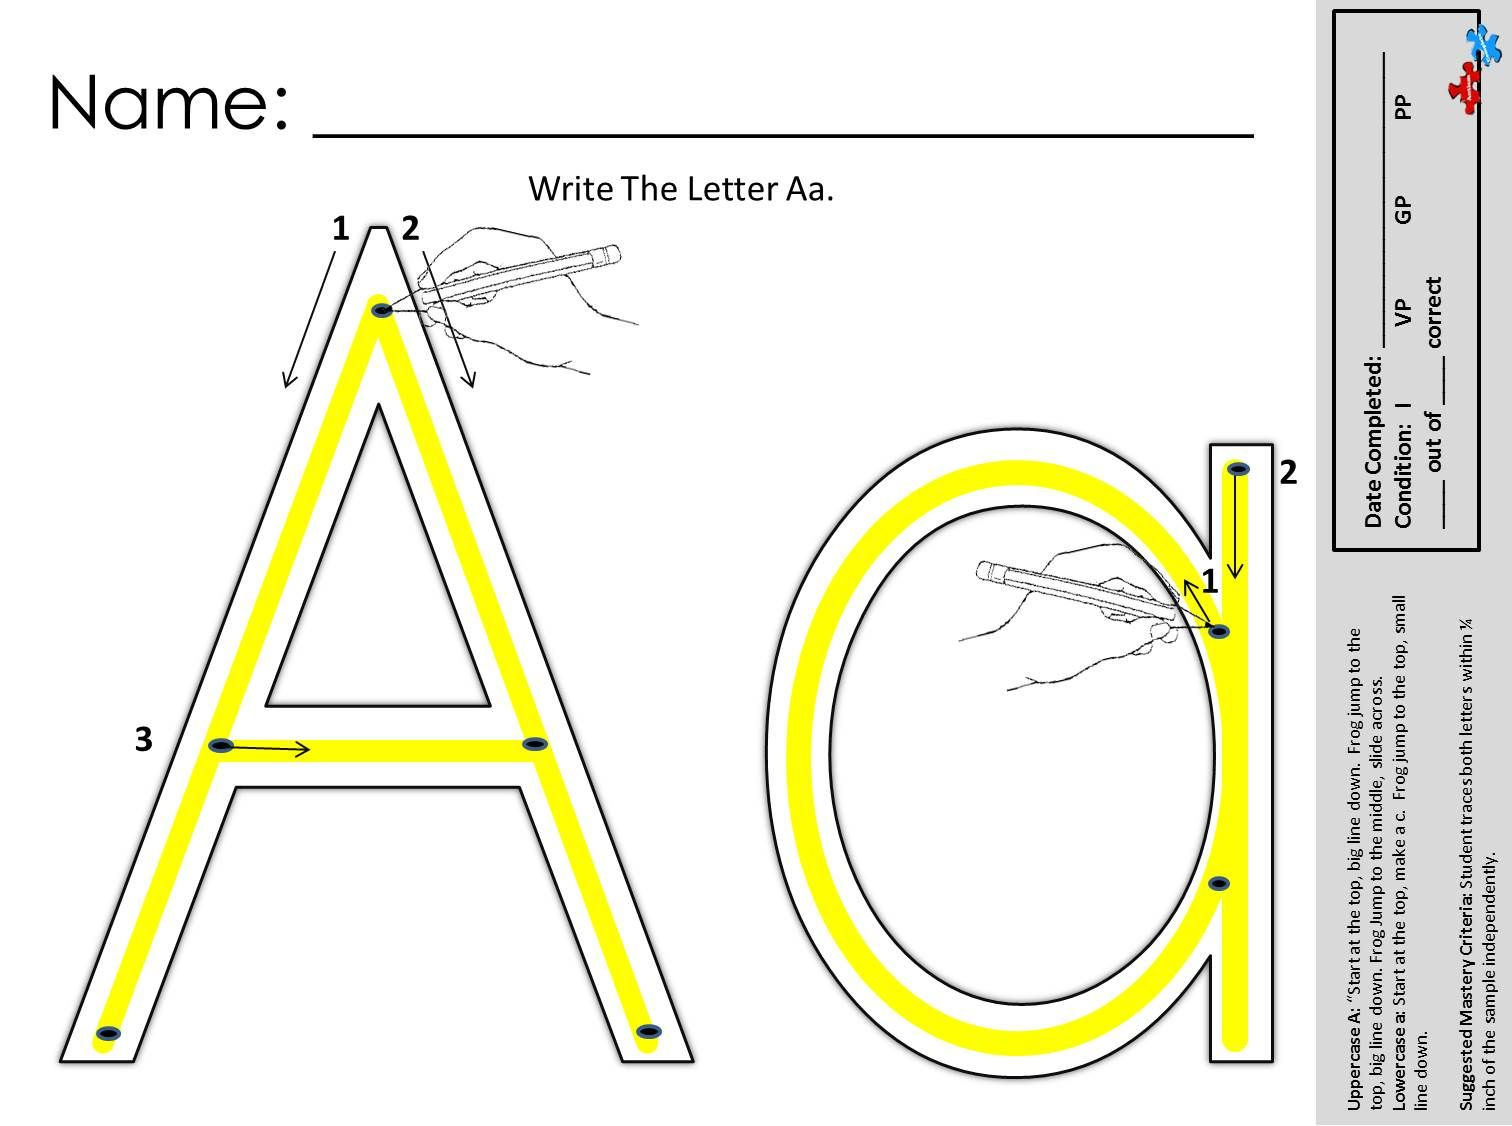 Download And Print These For Every Letter Of The Alphabet